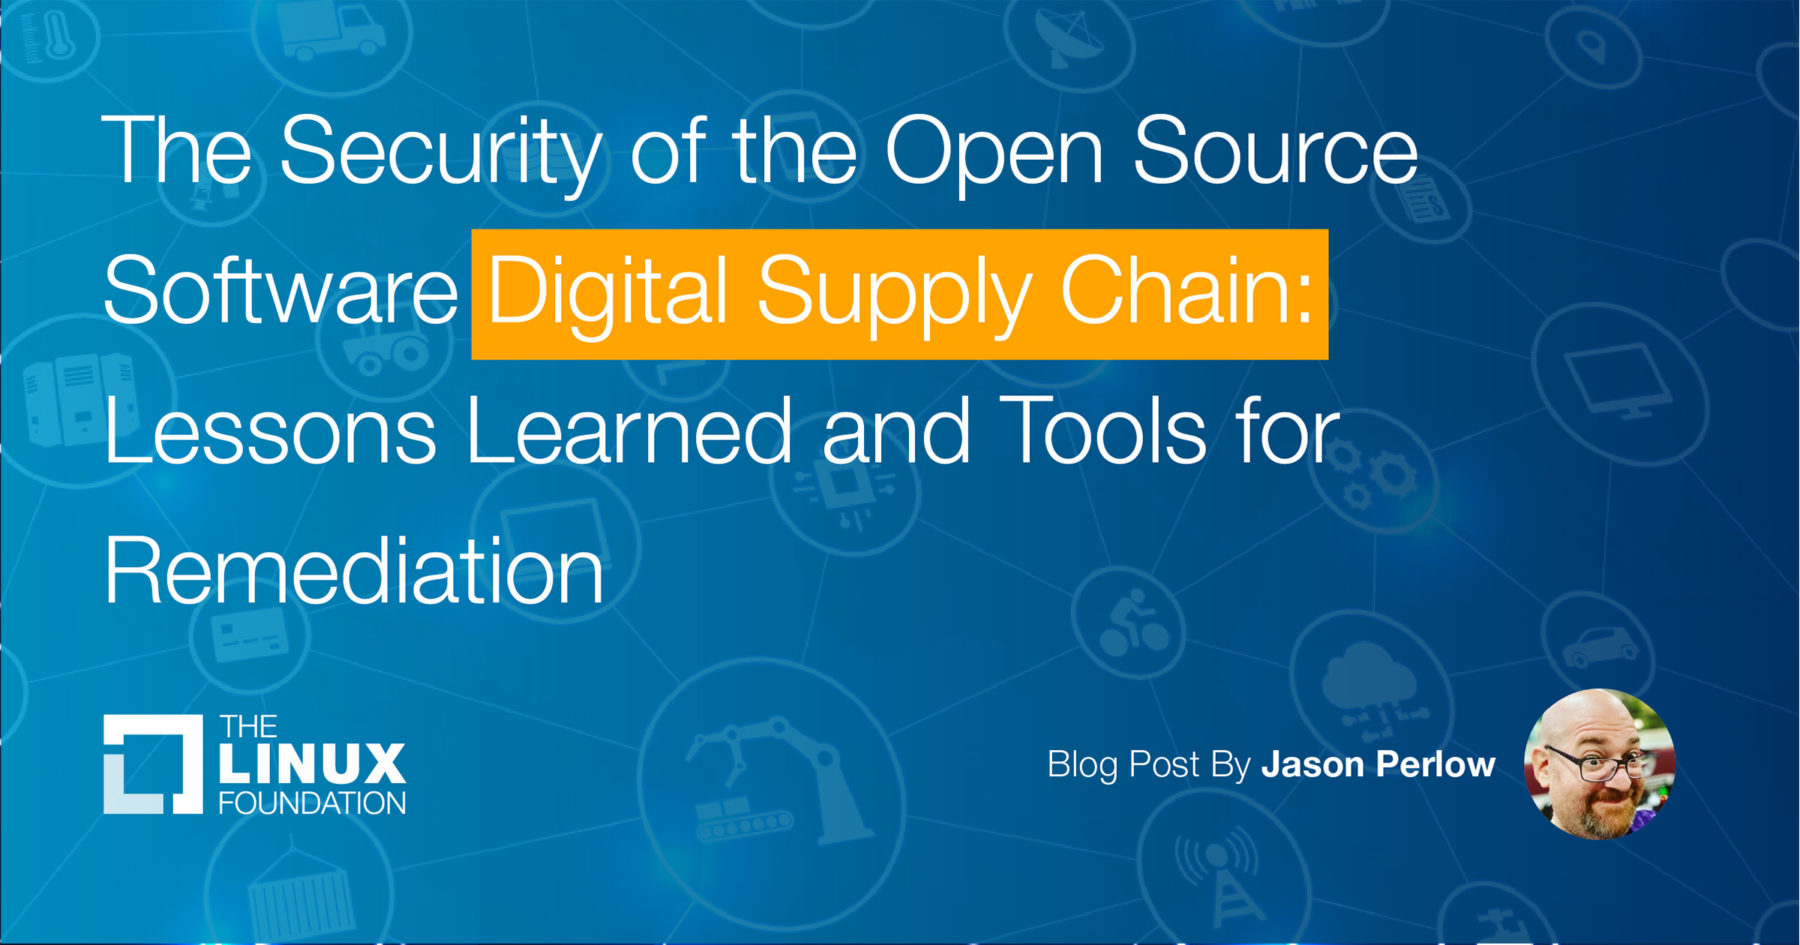 The Security of the Open Source Software Digital Supply Chain: Lessons Learned and Tools for Remediation